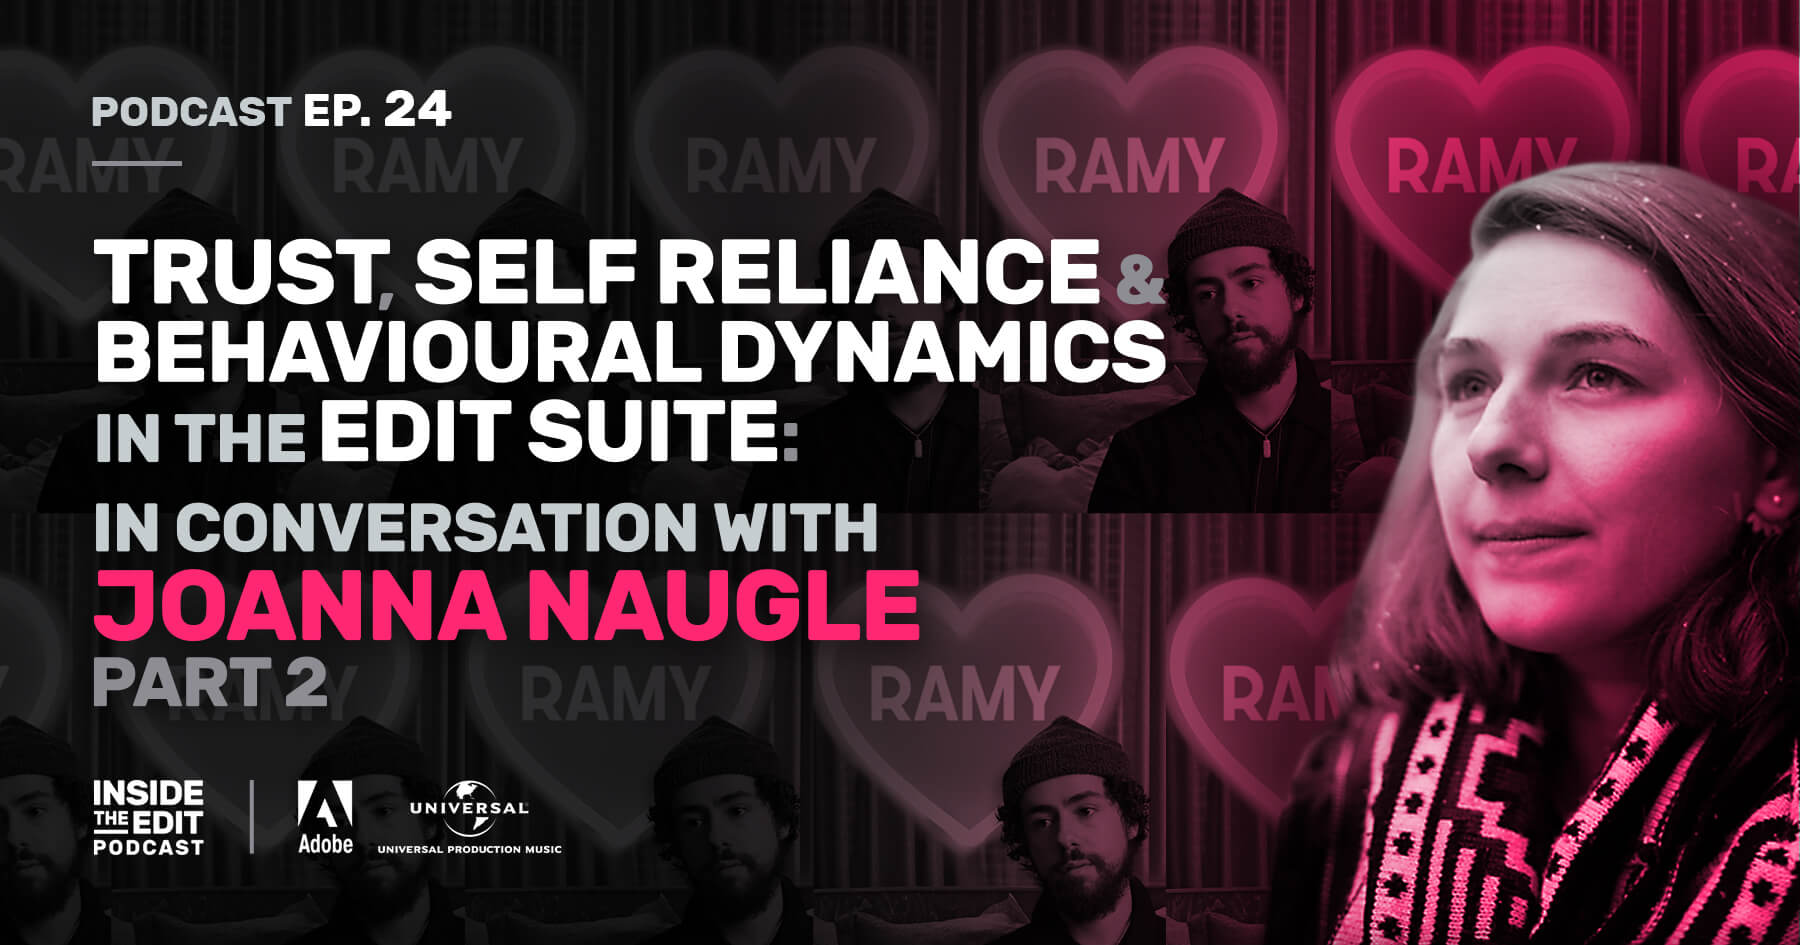 Trust, Self Reliance & Behavioural Dynamics in the Edit Suite: In Conversation With Joanna Naugle Part 2